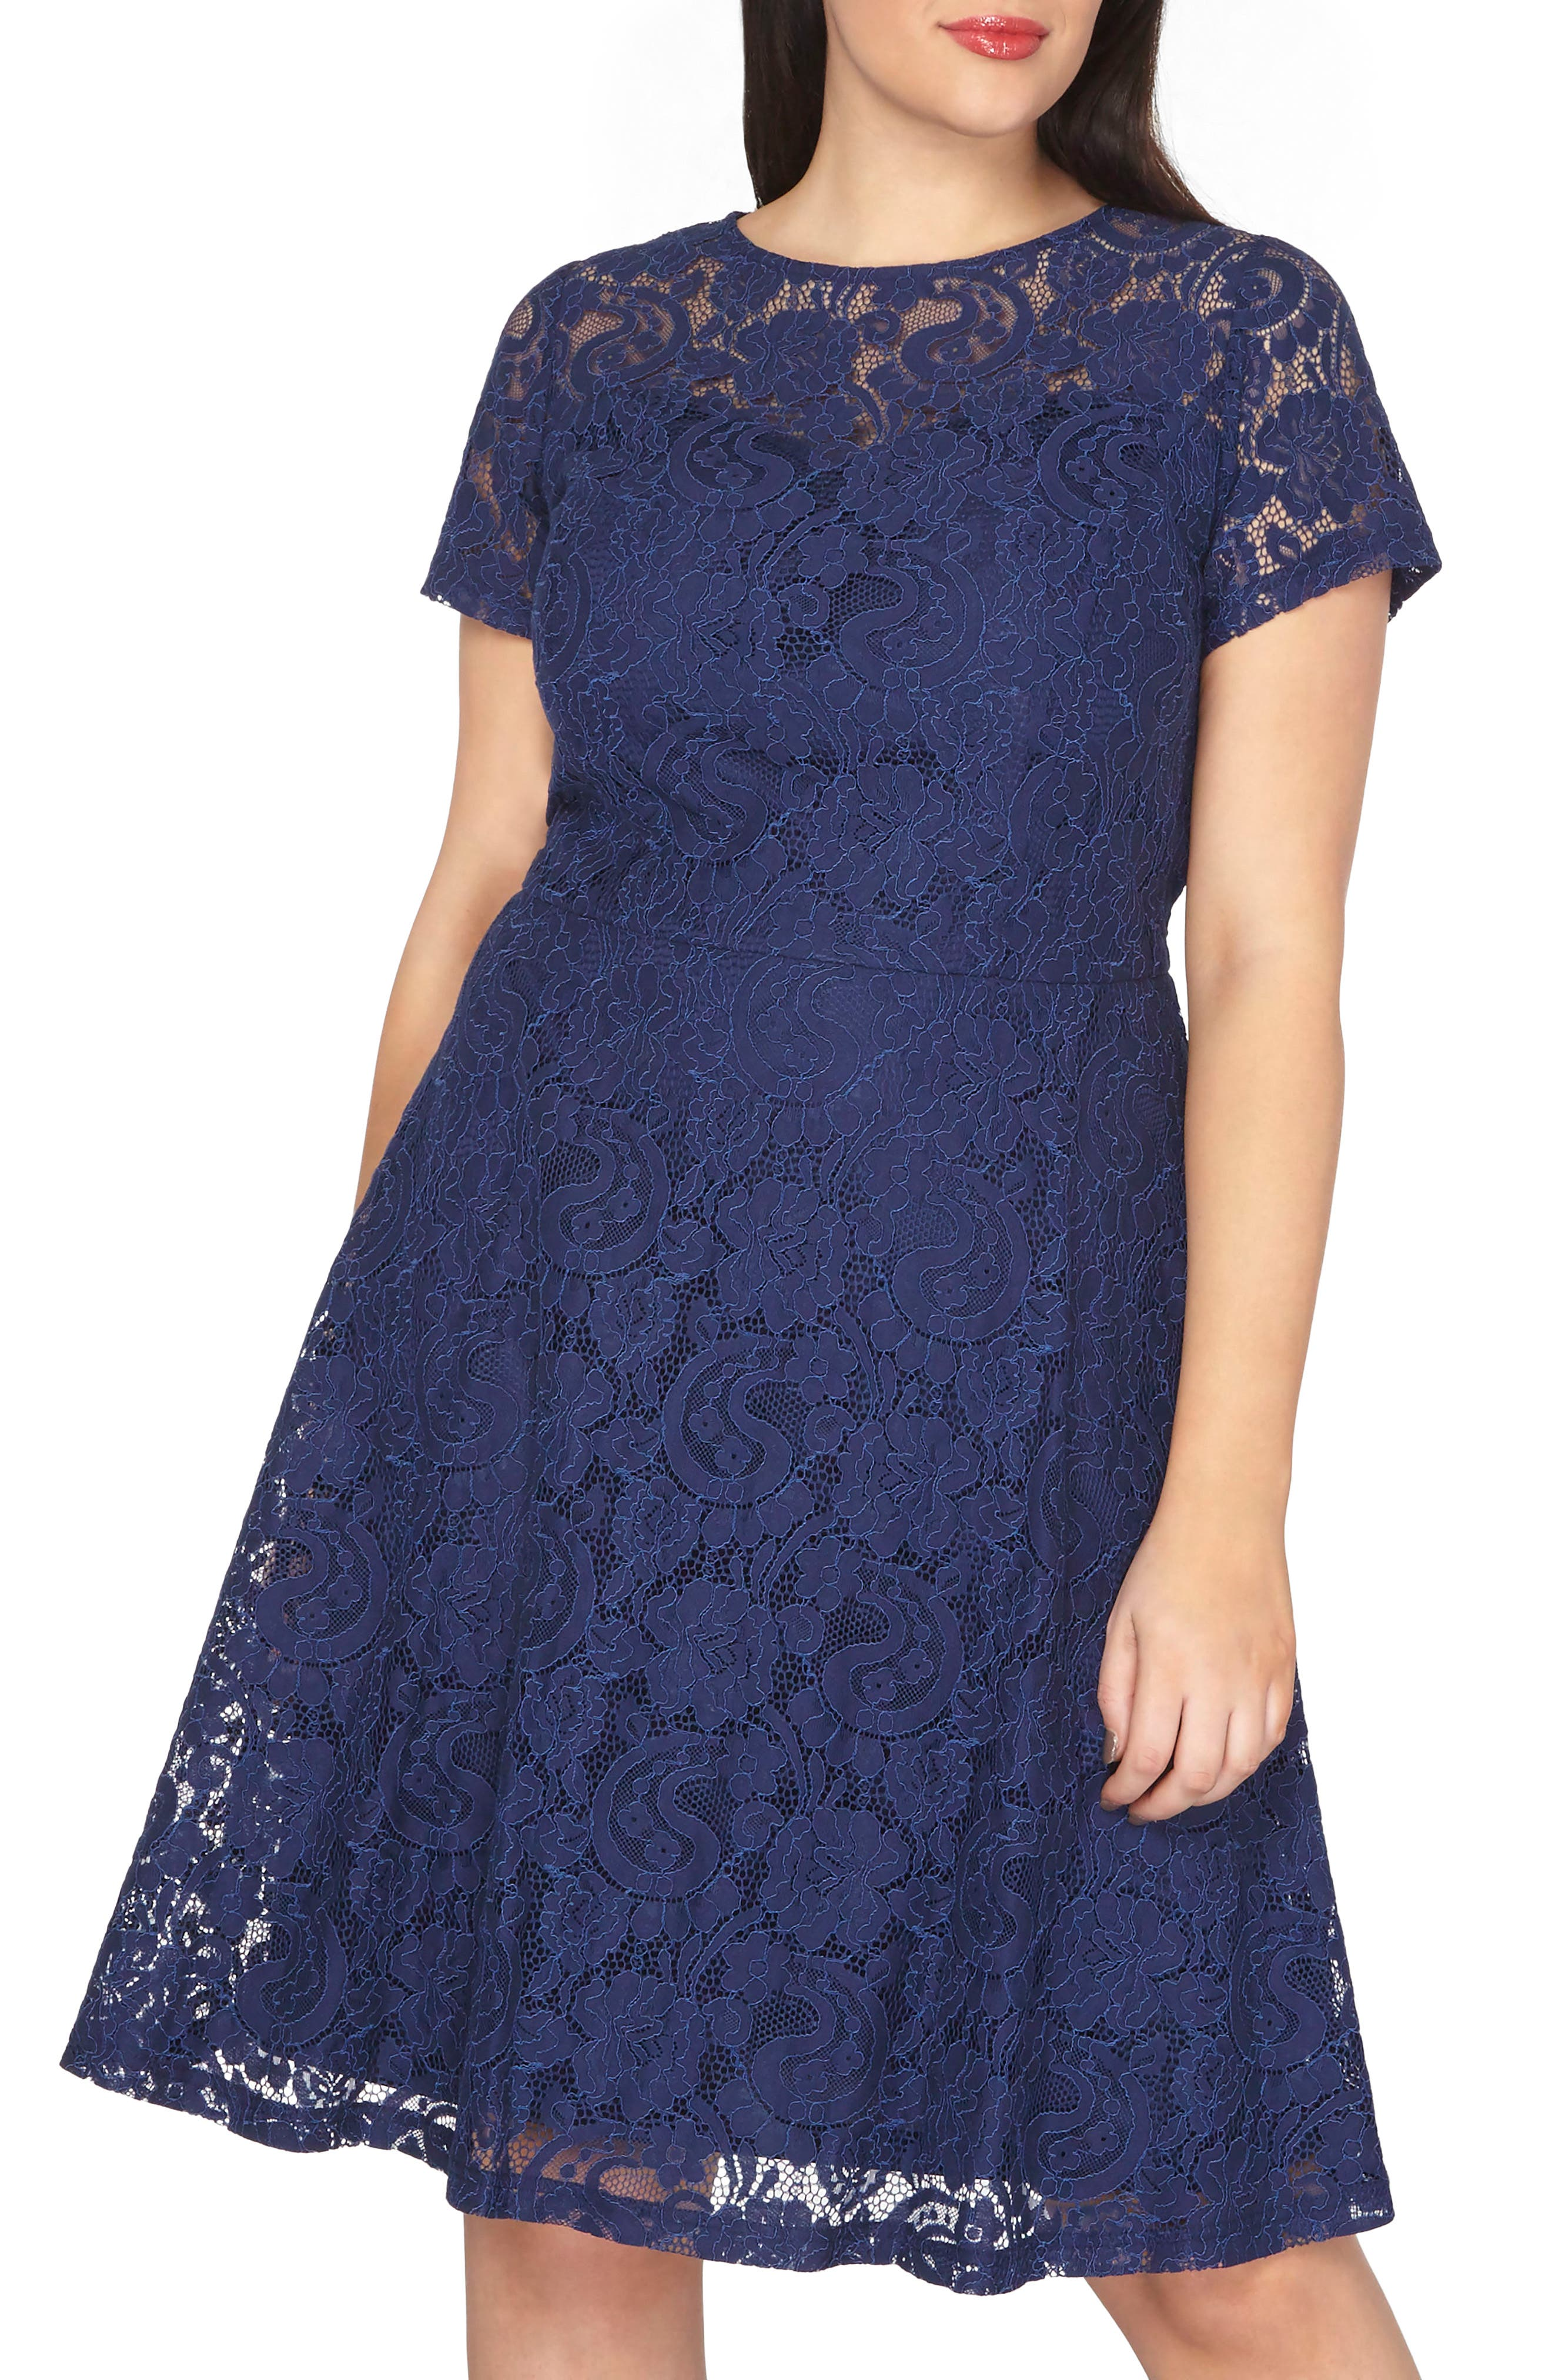 Alternate Image 1 Selected - Dorothy Perkins Lace Fit & Flare Dress (Plus Size)